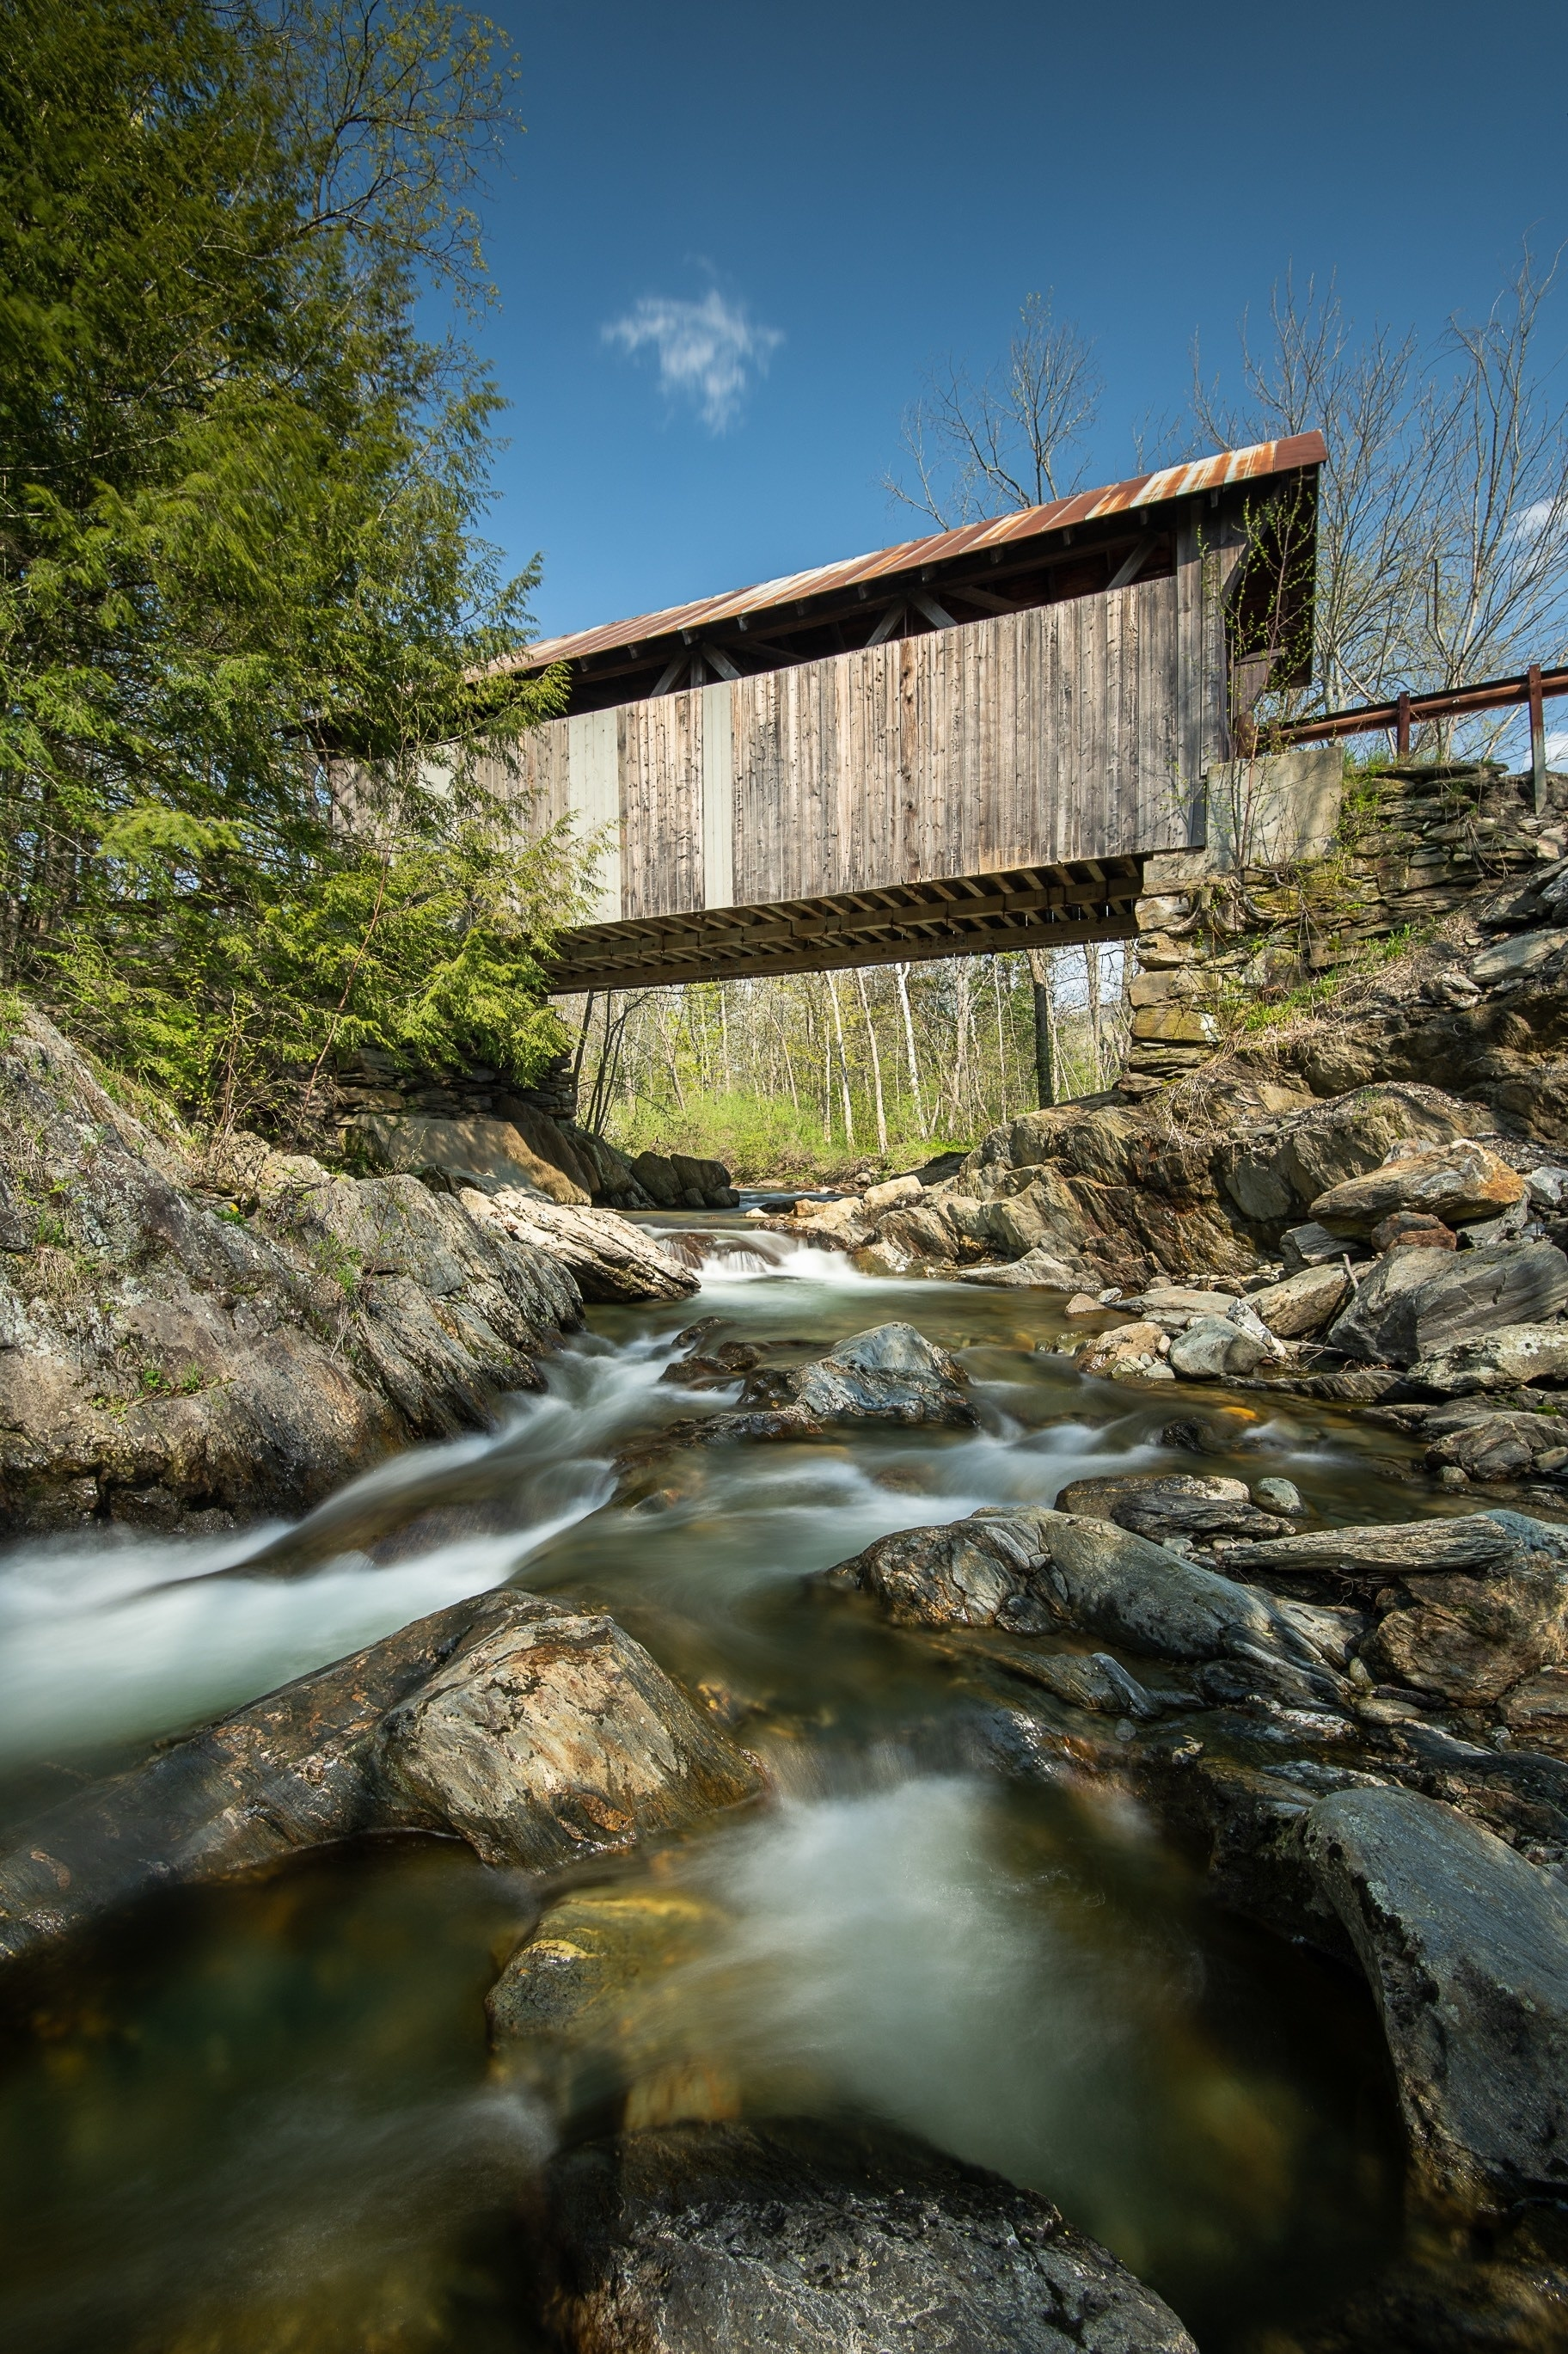 Stowe Hollow, Stowe, Vermont, United States of America